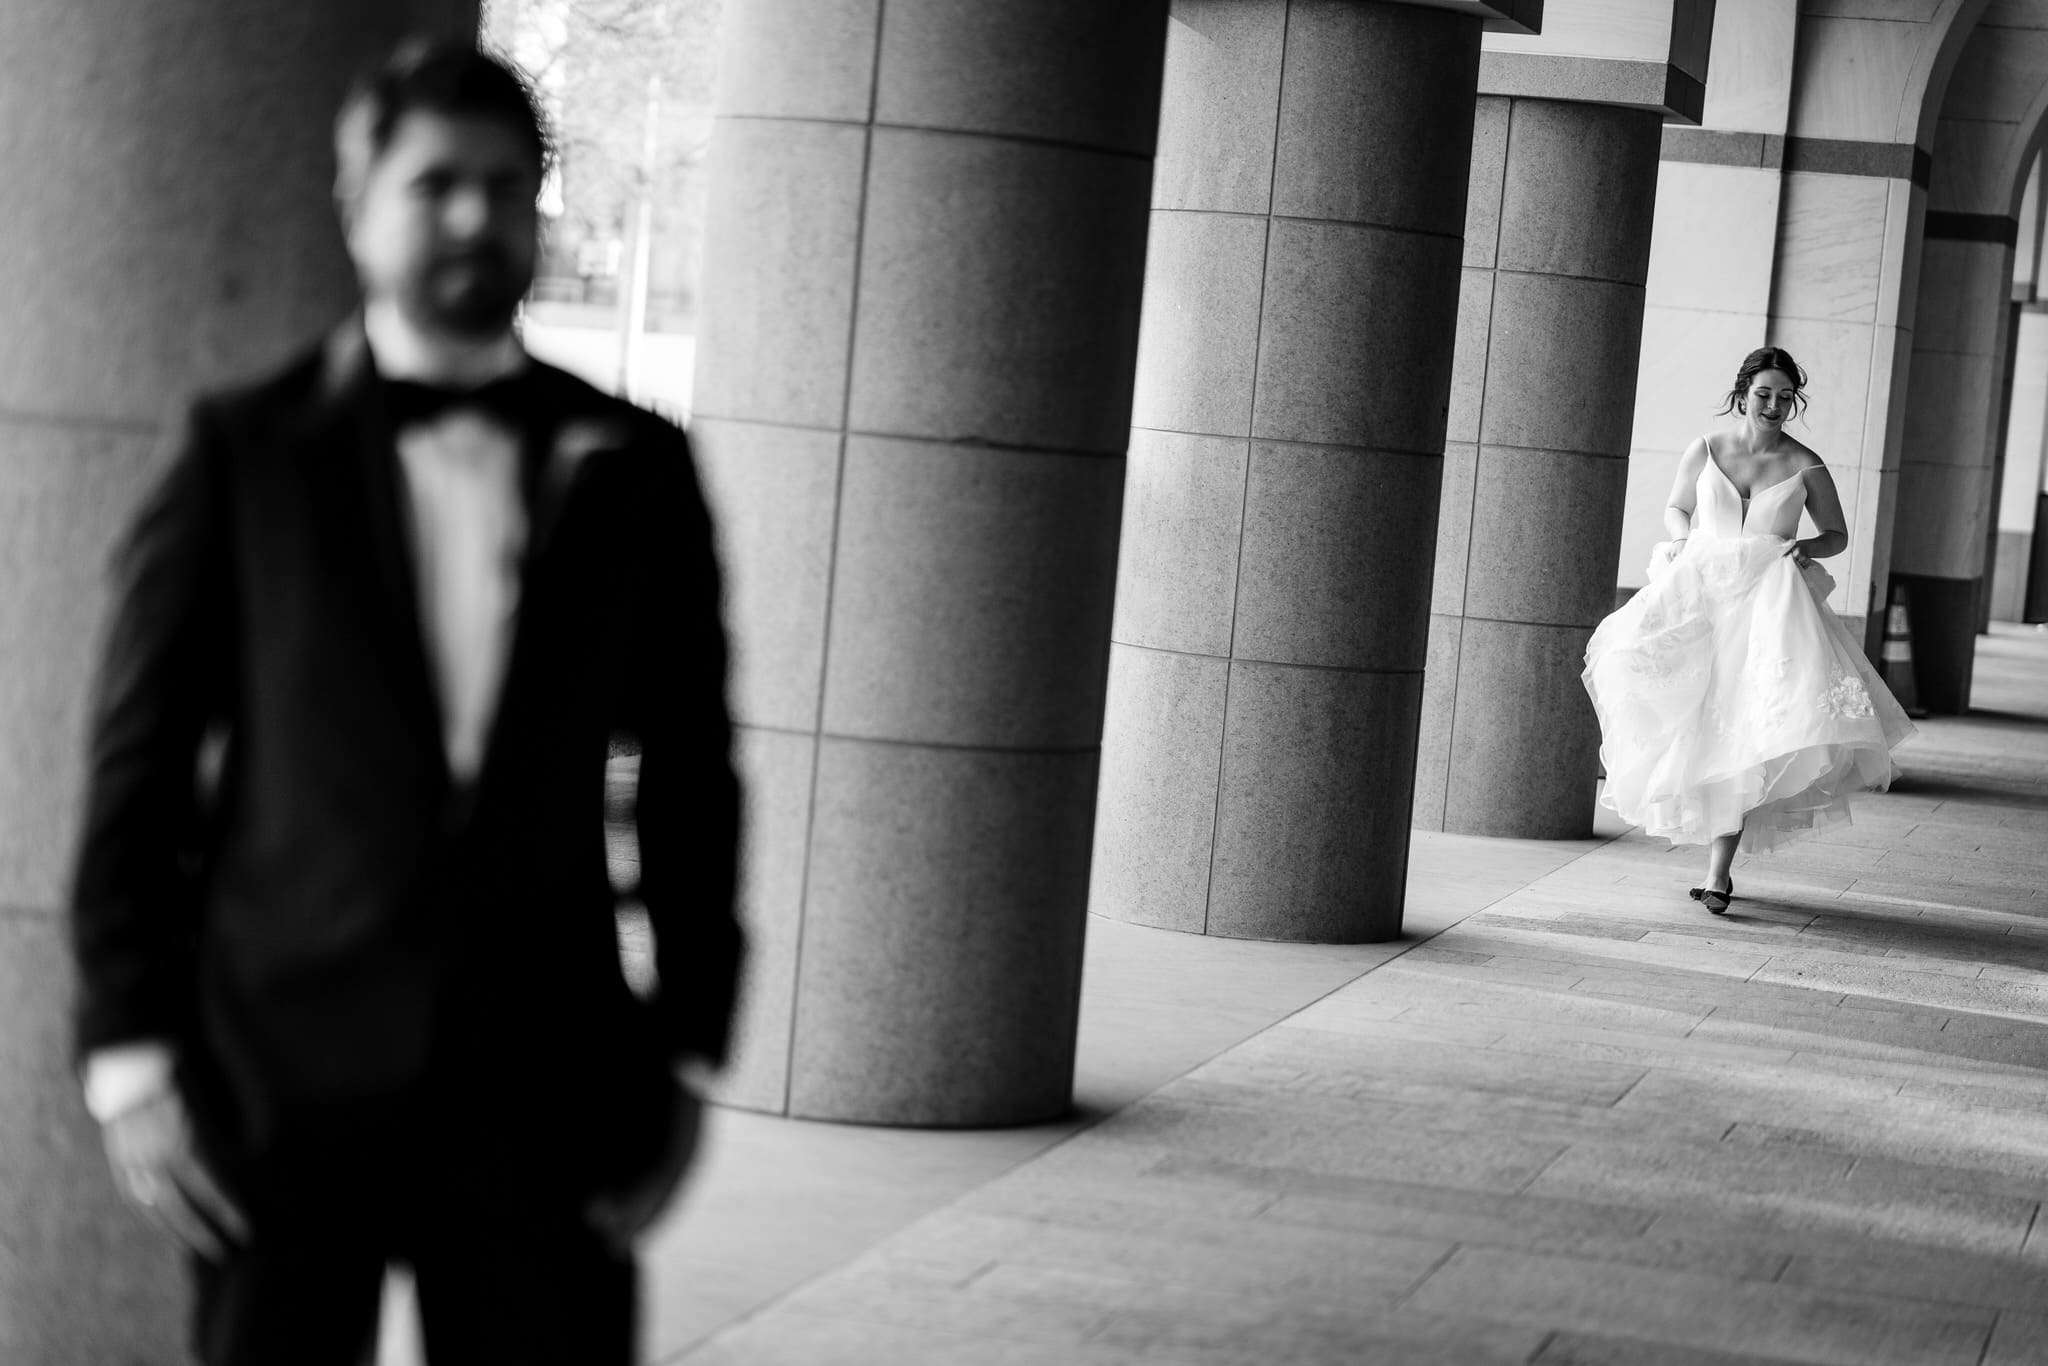 best austin wedding photographer john winters photography number 1 top rated downtown austin wedding blanton museum of art